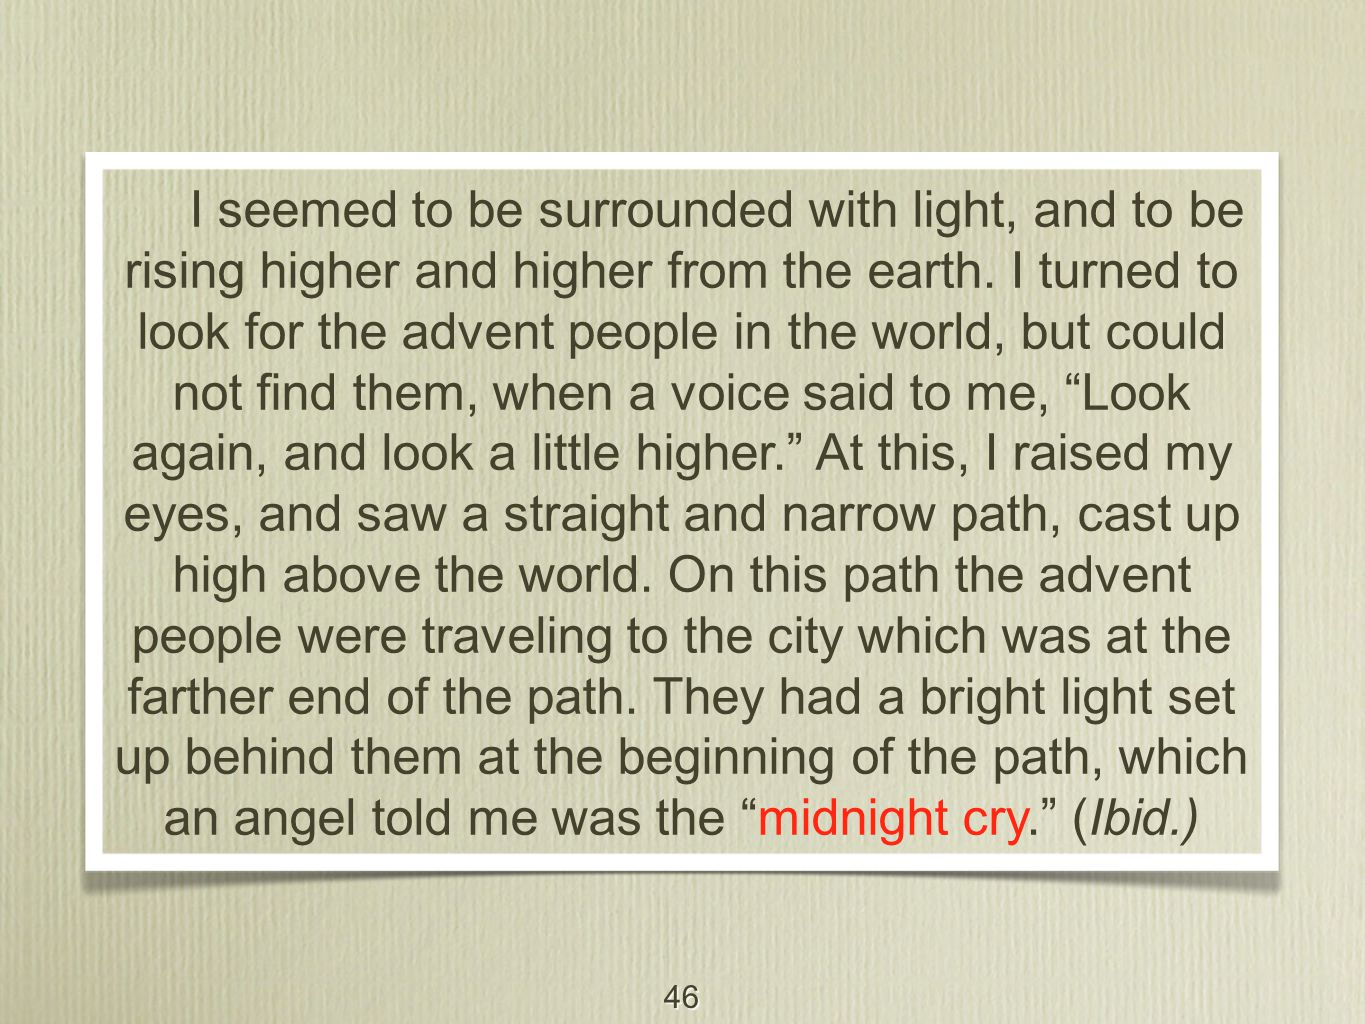 46 I seemed to be surrounded with light, and to be rising higher and higher from the earth. I turned to look for the advent people in the world, but c